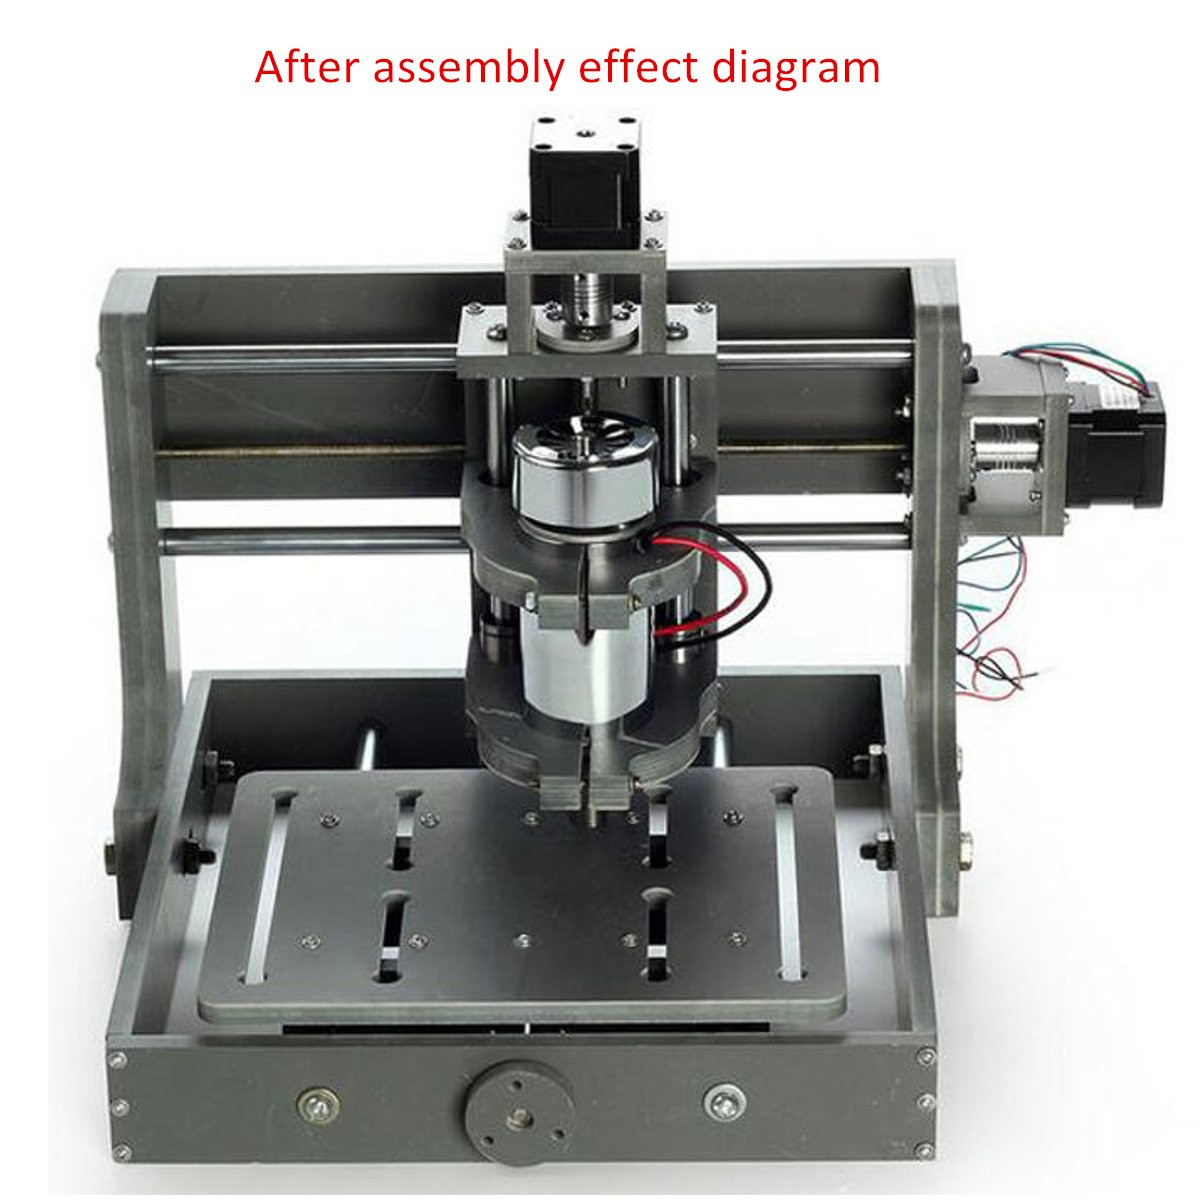 New Pcb Milling Machine Cnc 2020b Diy Wood Carving Mini Mill Engraving Pvc Engraver In Routers From Tools On Alibaba Group